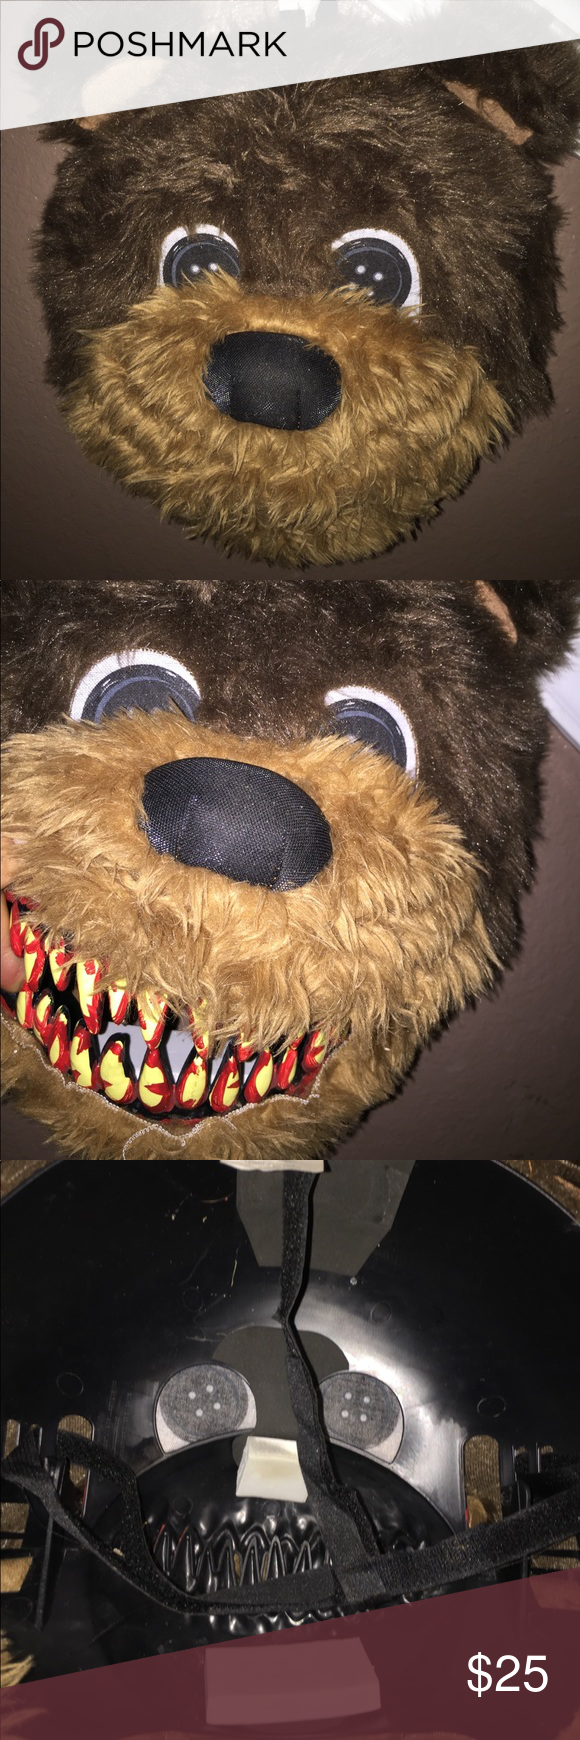 🐻bear animotion mask🐻for adult or youth yes!! animotion bear mask